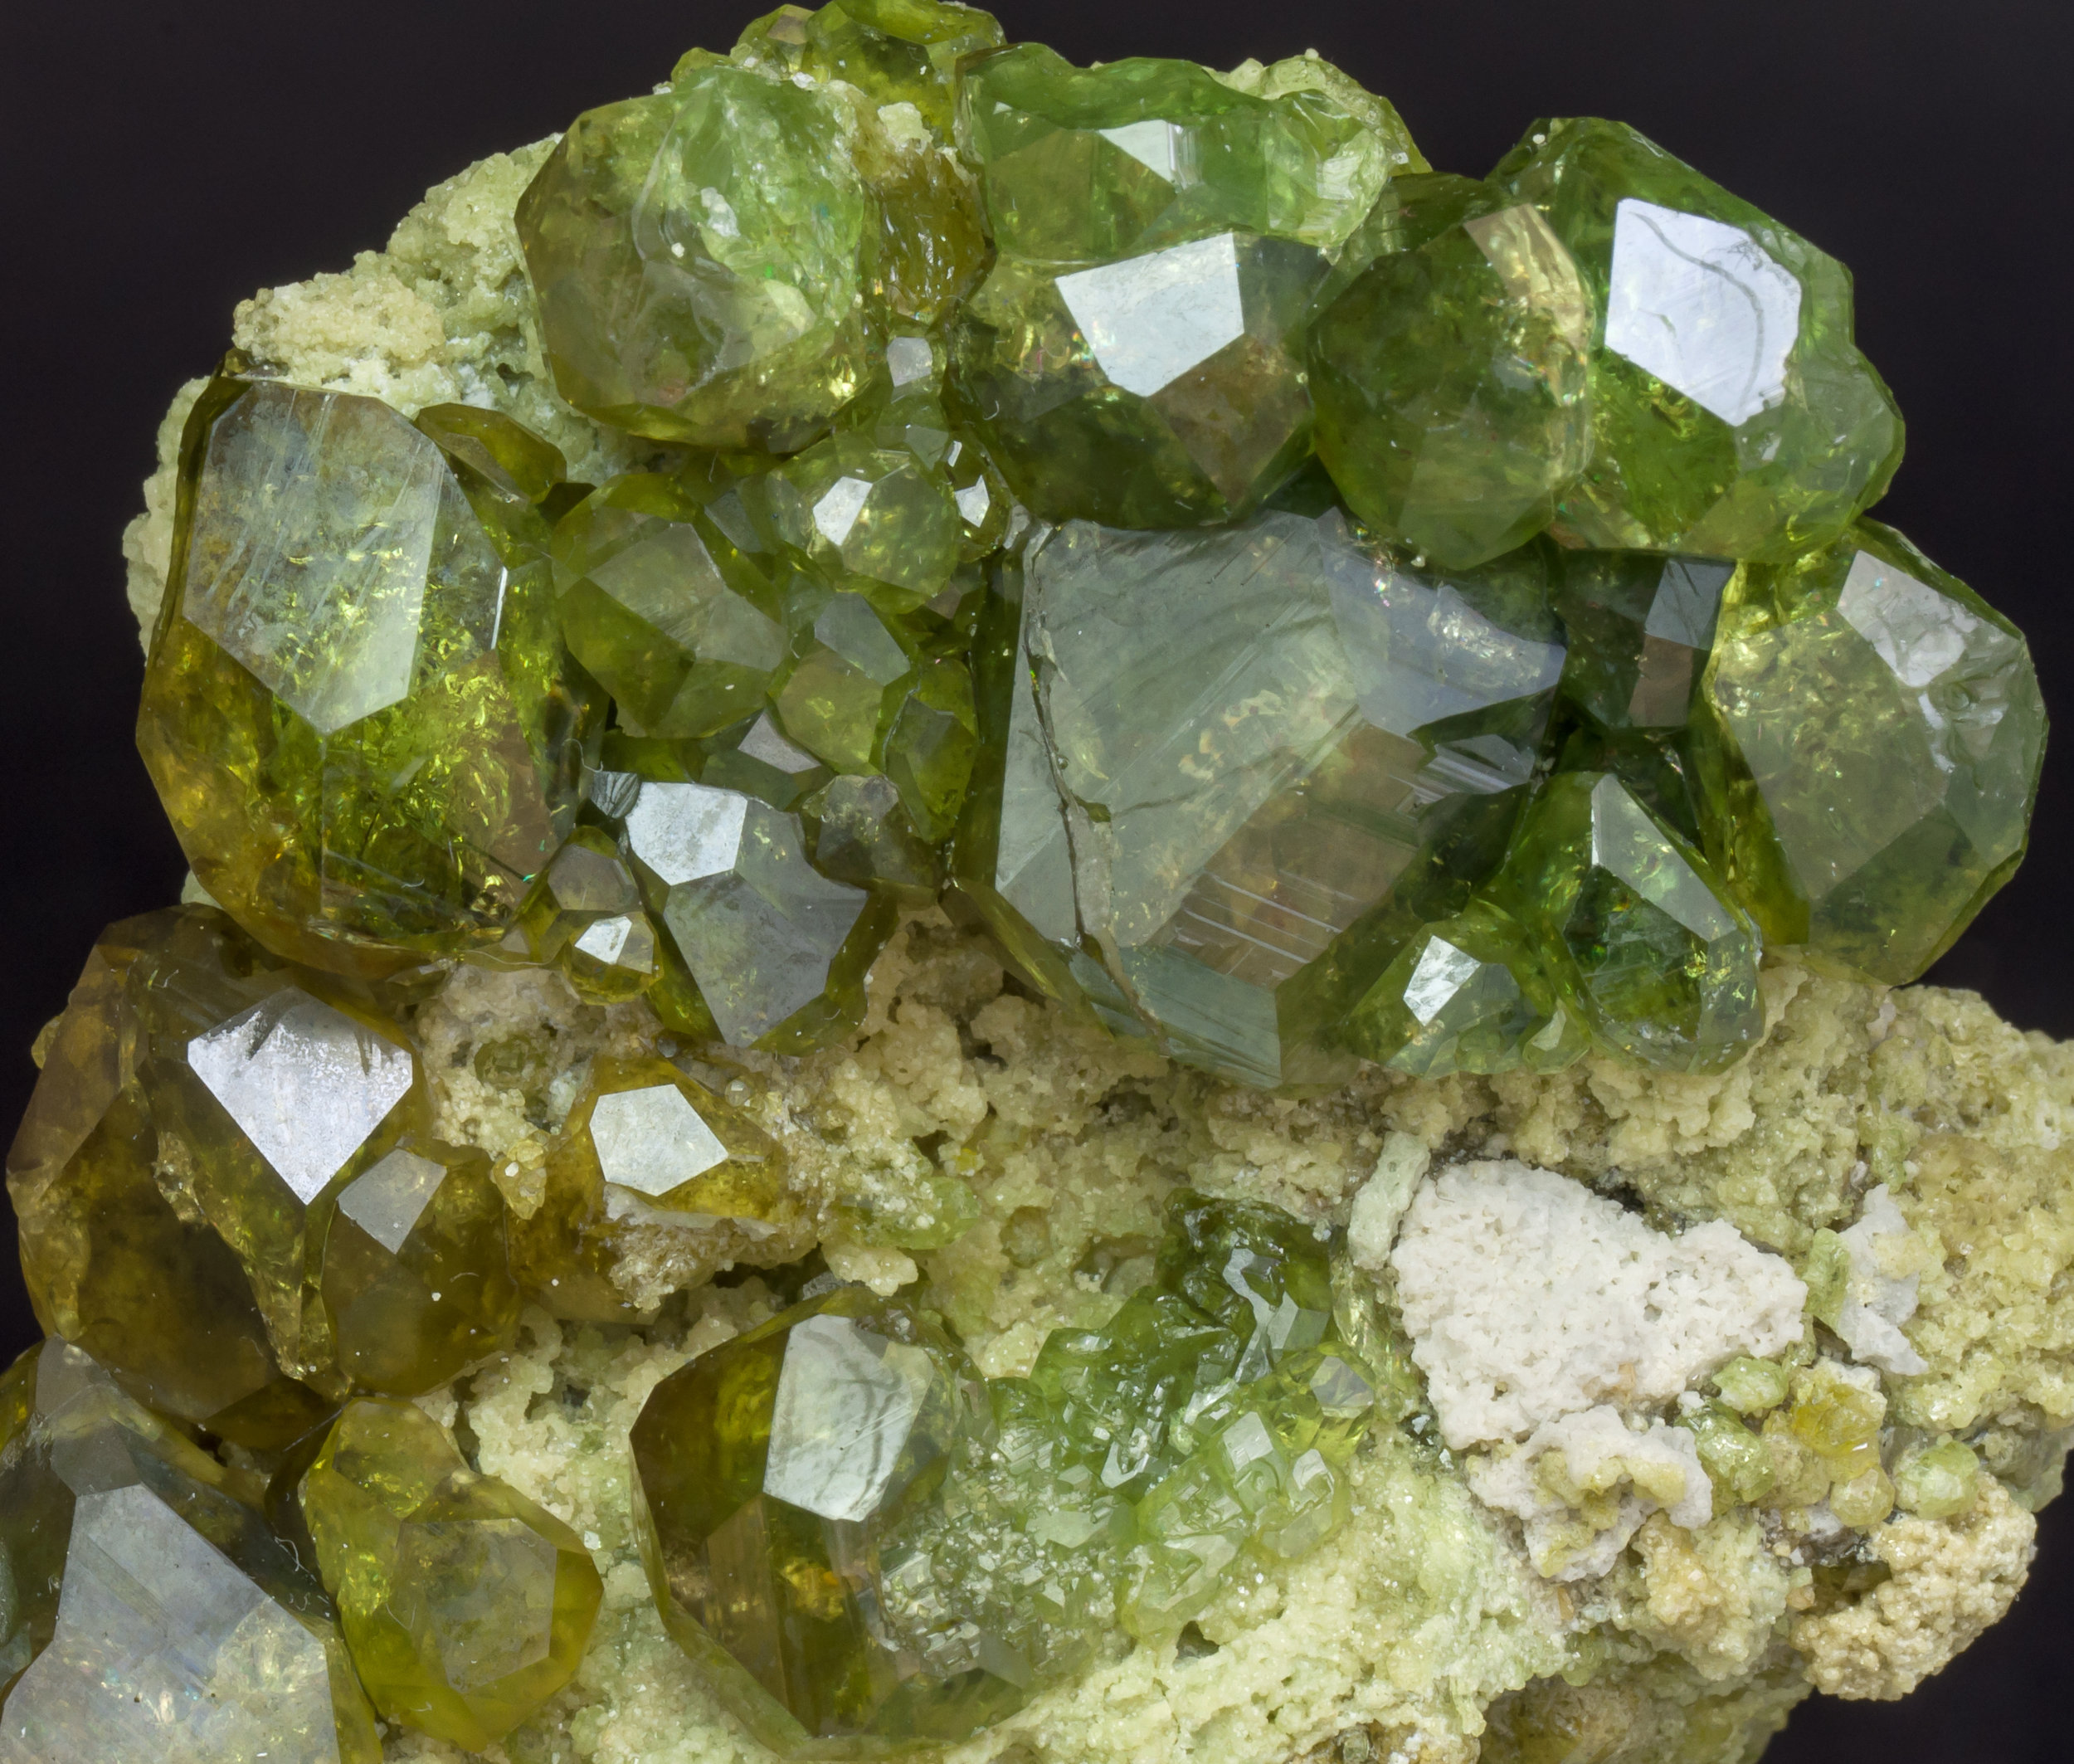 specimens/s_imagesAL3/Andradite_demantoid-MT86AL3d.jpg